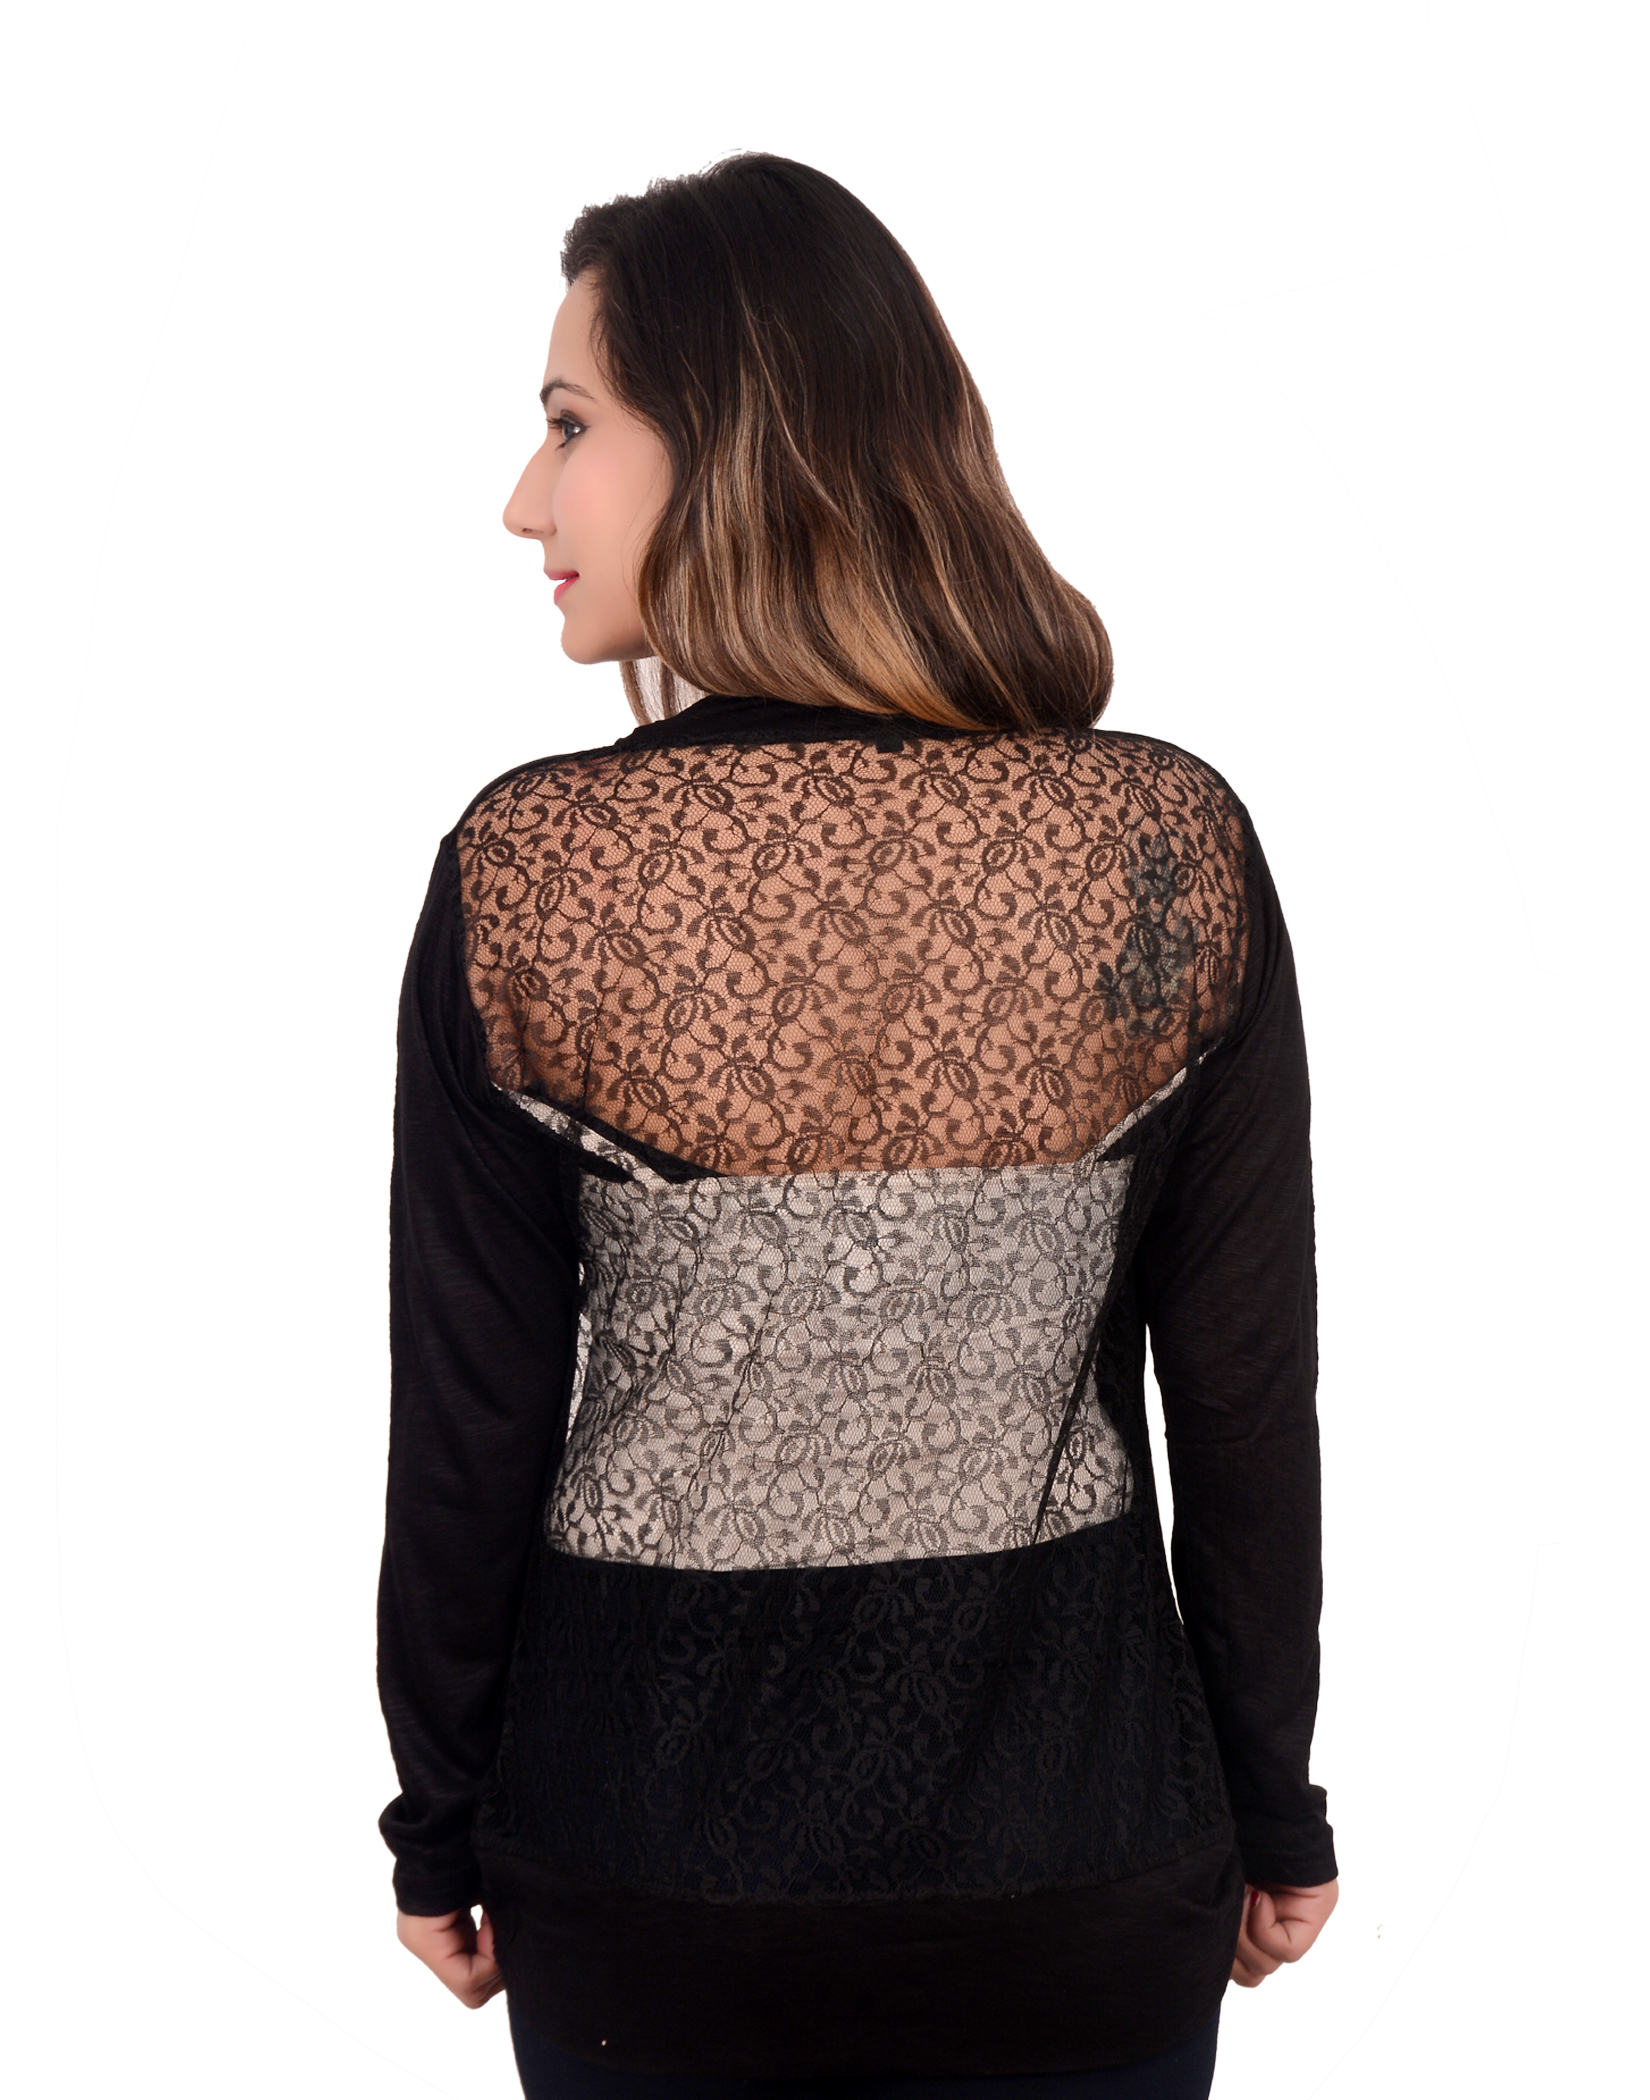 Back Net Shrug